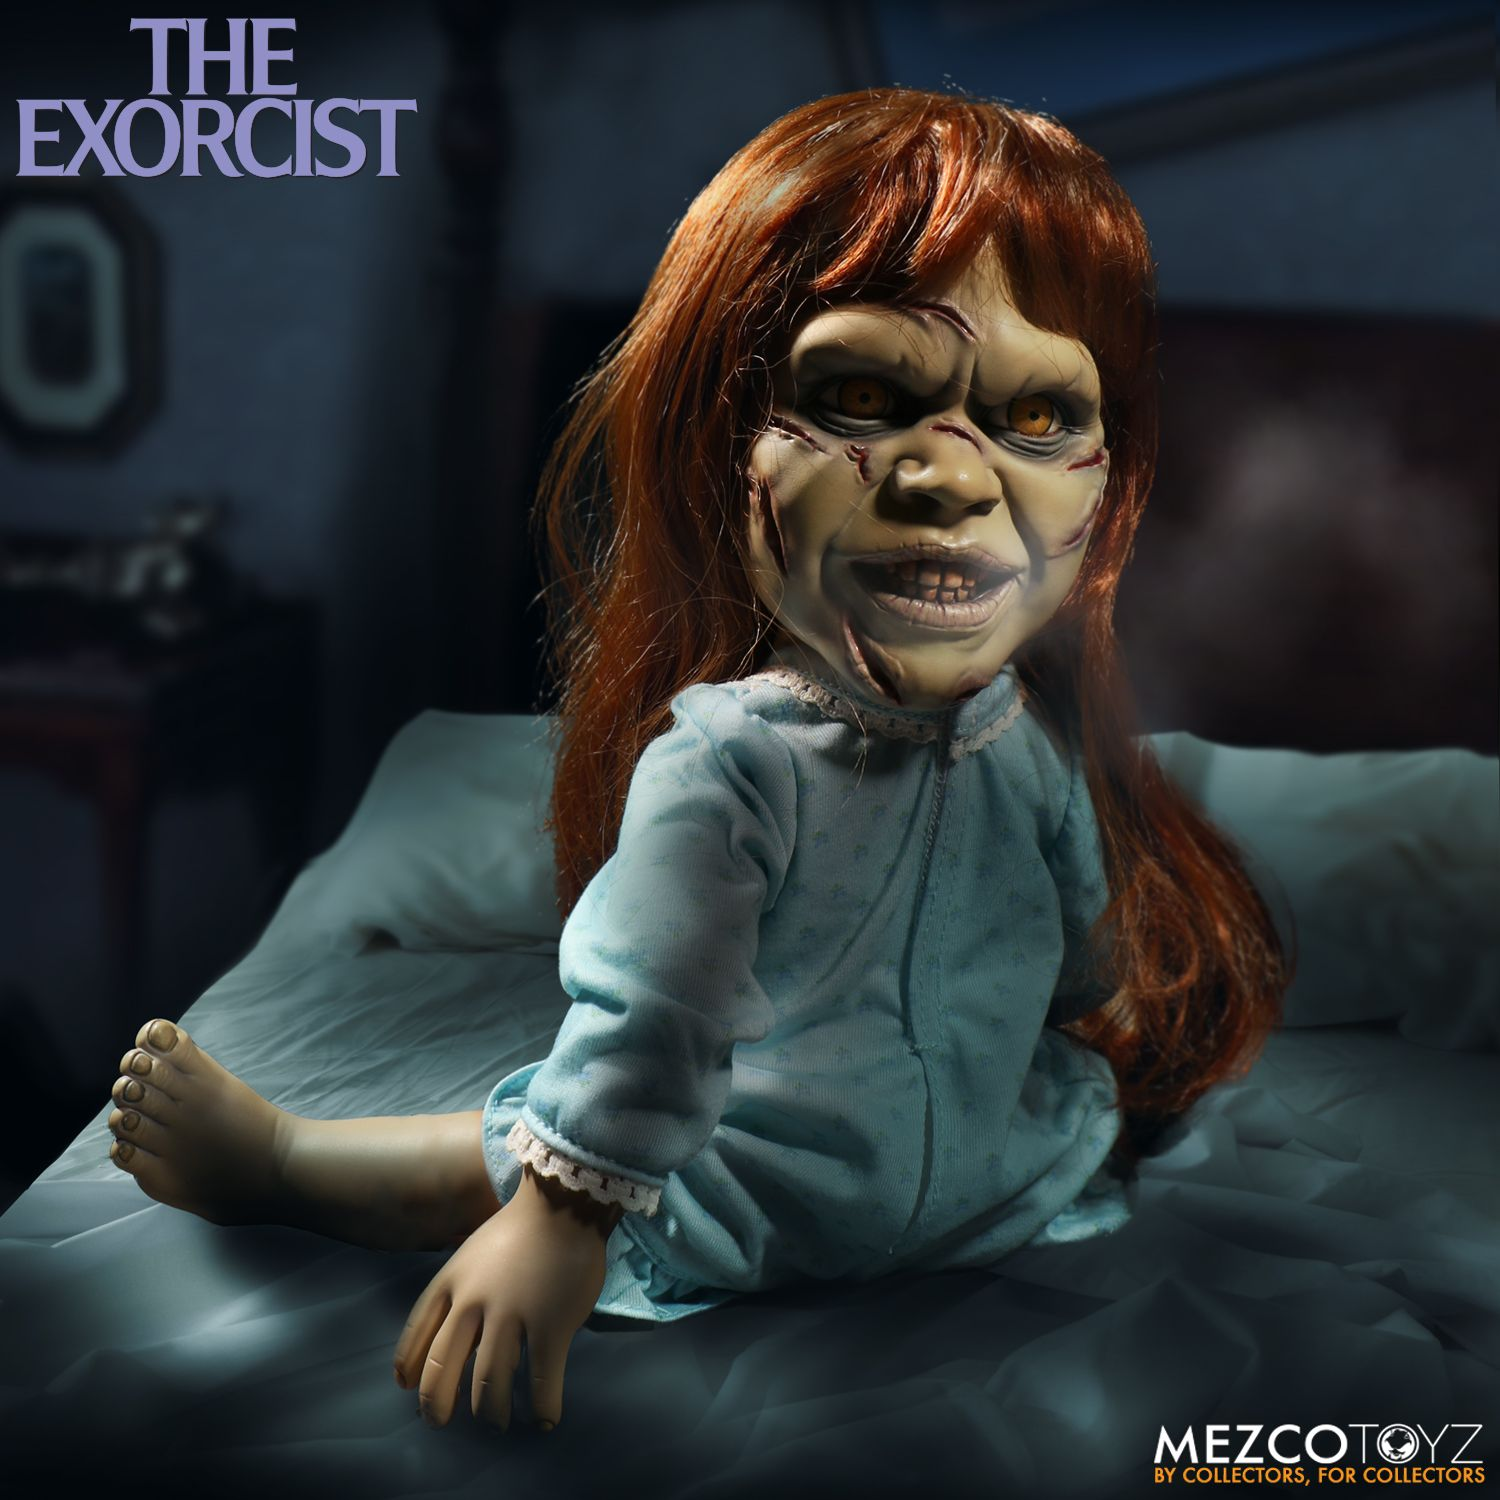 Mezco - Mega Scale - The Exorcist with Sound Feature